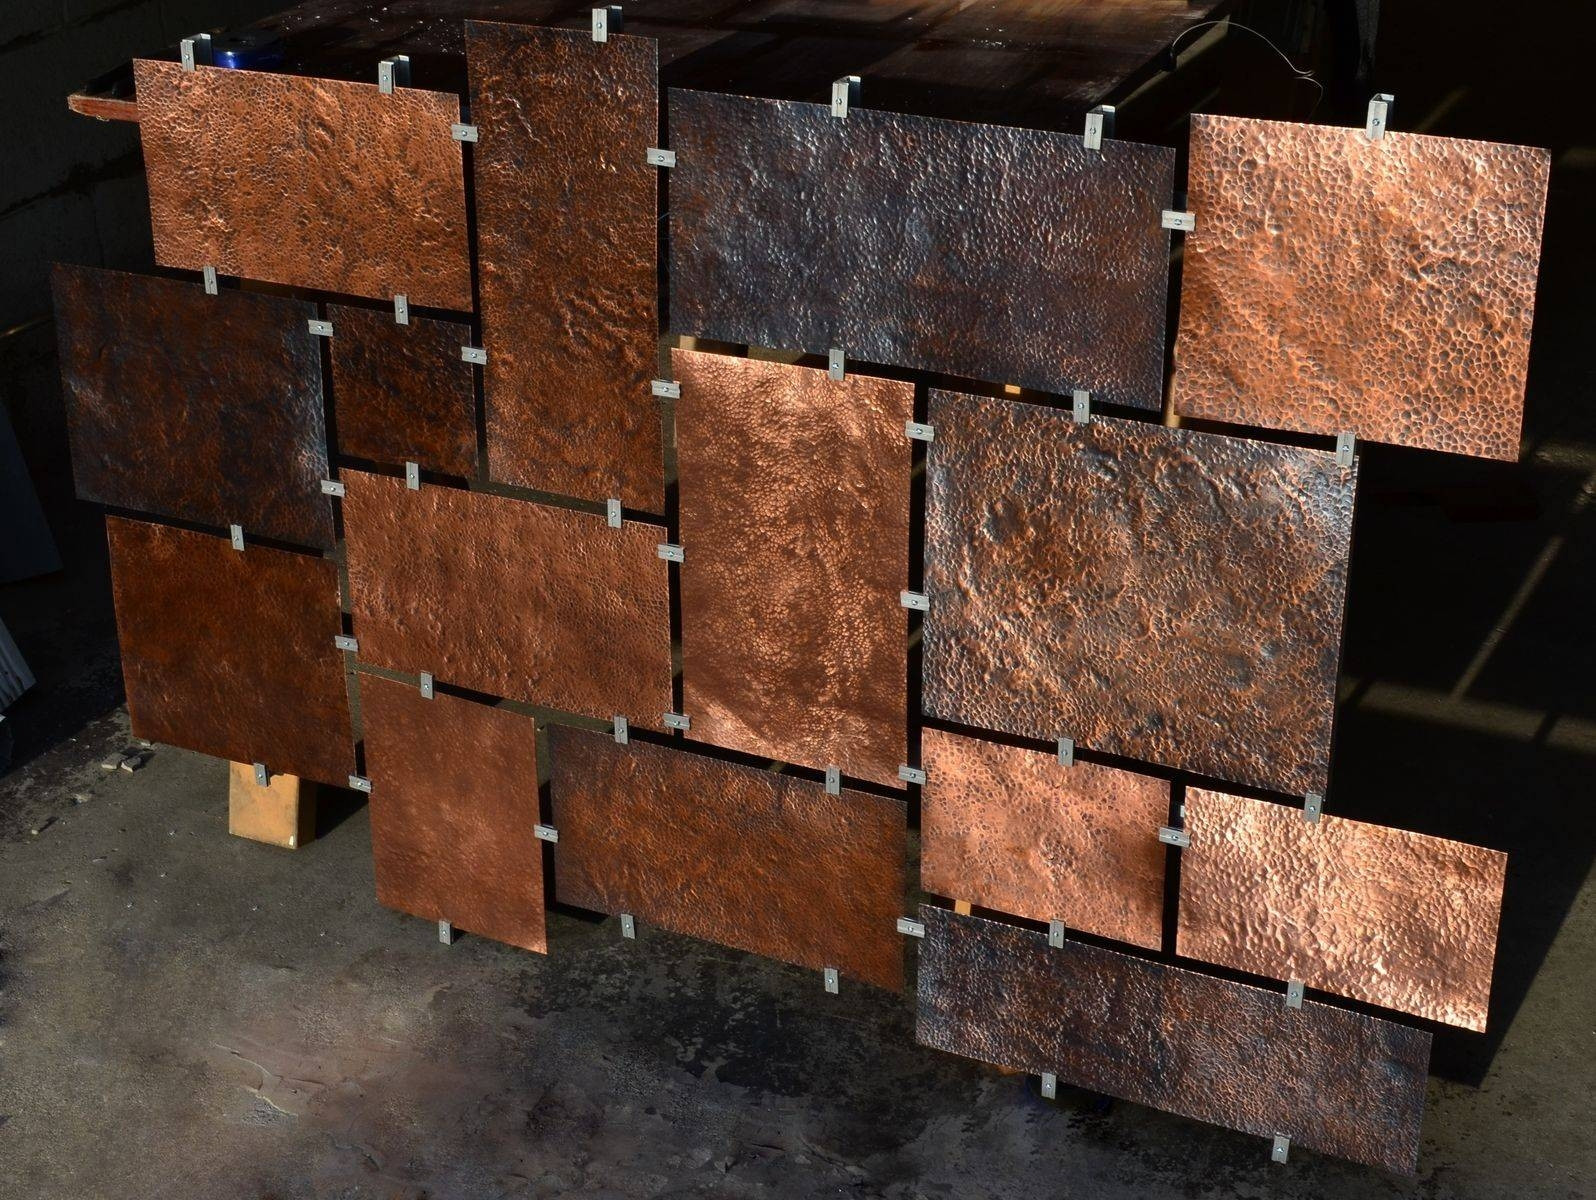 Hand Made Custom Hammered Copper Wall Artfabitecture Regarding Most Current Hammered Metal Wall Art (View 4 of 20)